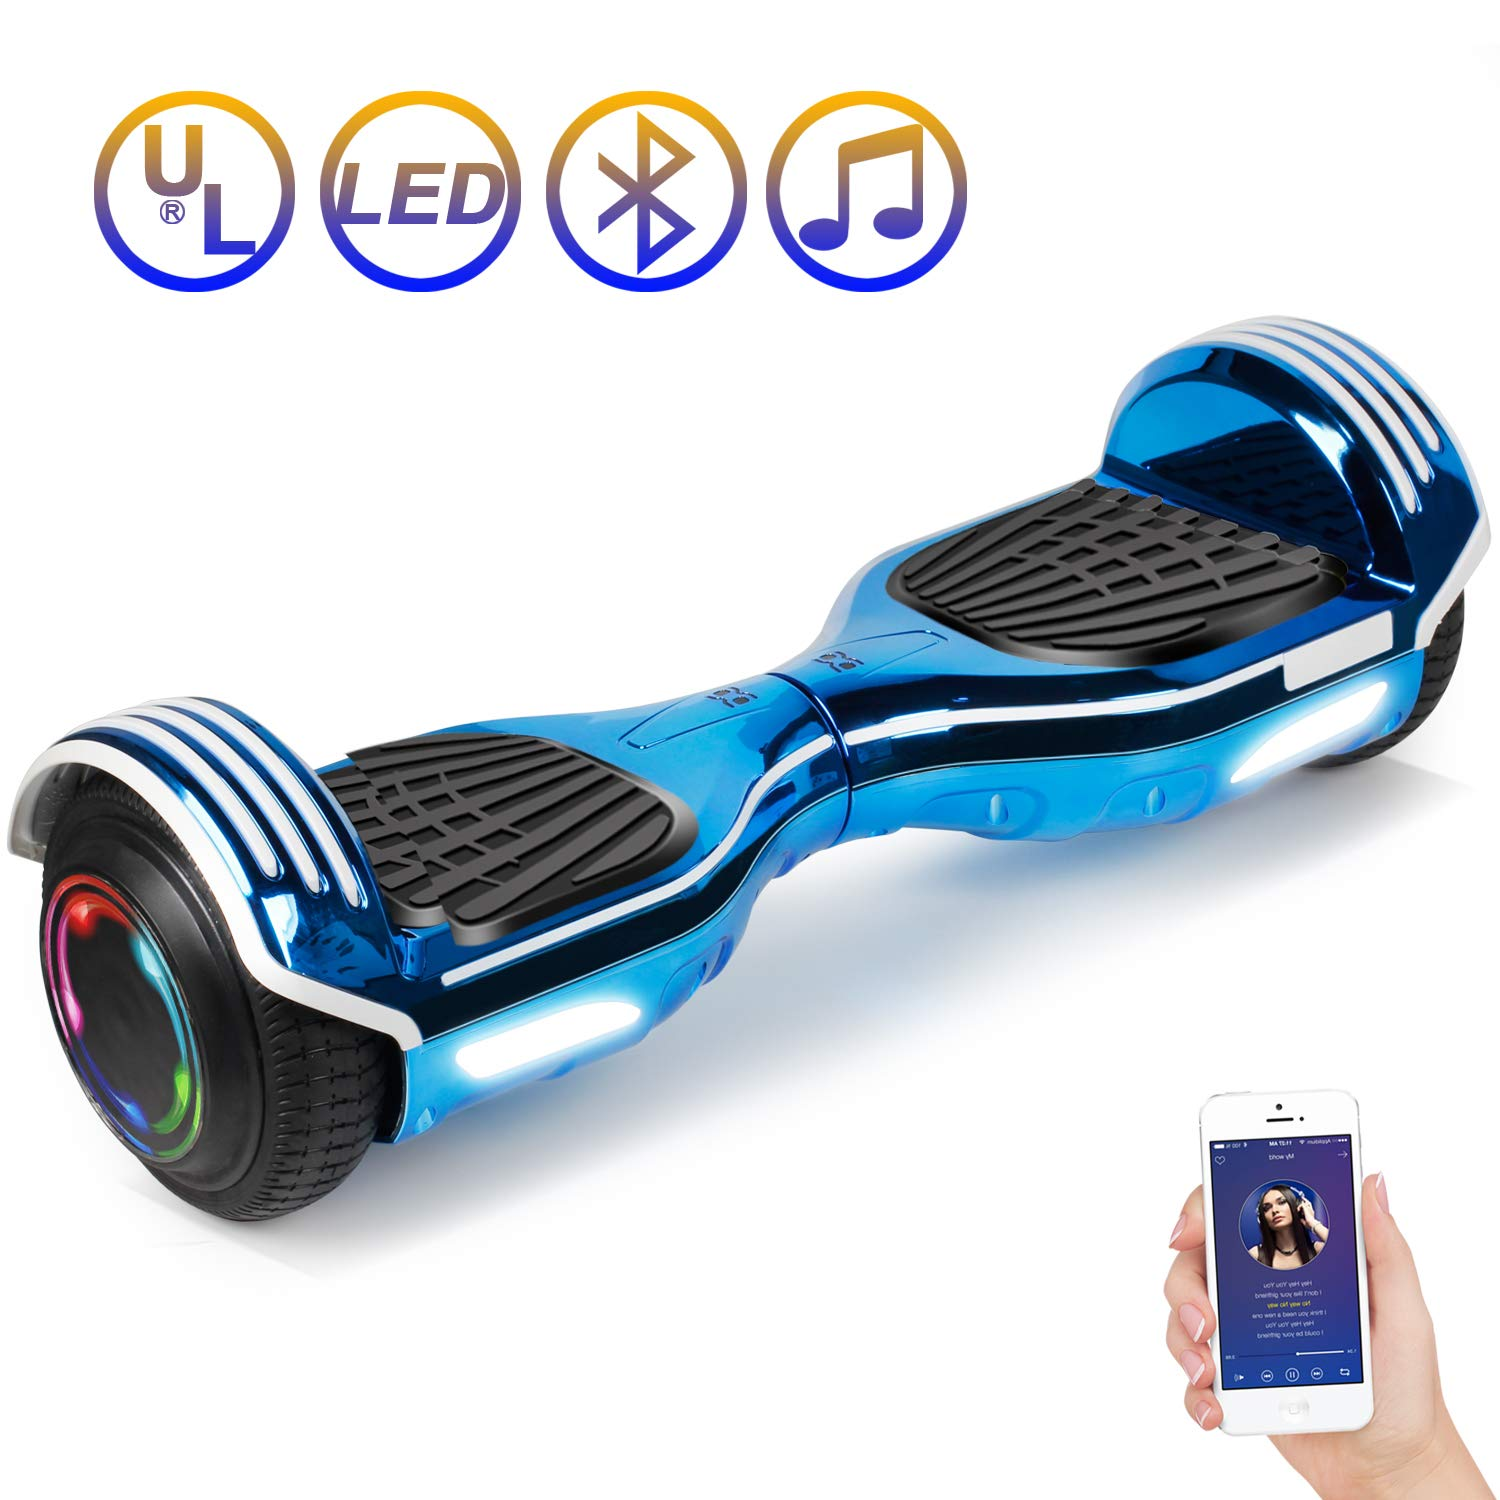 SISIGAD Hoverboard Self Balancing Scooter 6.5'' Two-Wheel Self Balancing Hoverboard with Bluetooth Speaker Electric Scooter for Adult Kids Gift UL 2272 Certified 138A Series - Plating Blue by SISIGAD